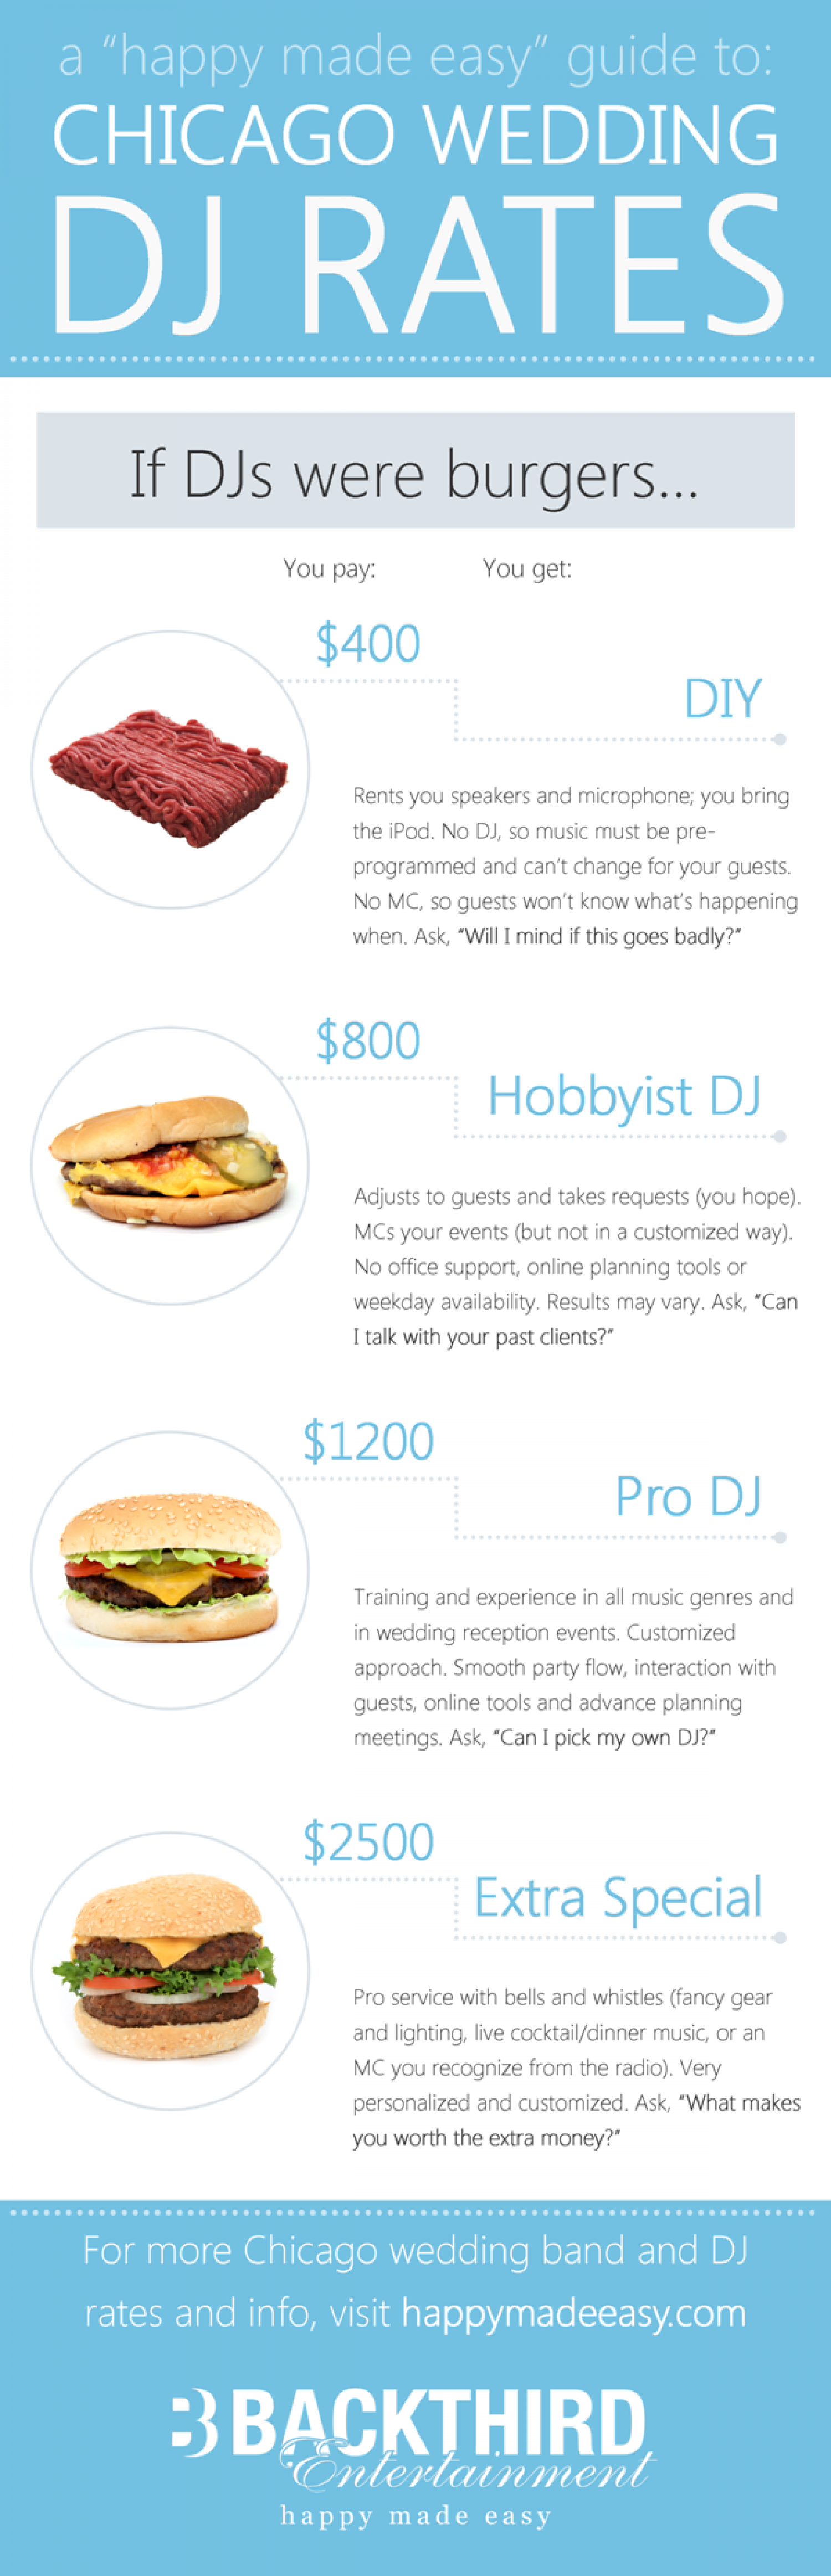 Chicago wedding DJ rates Infographic